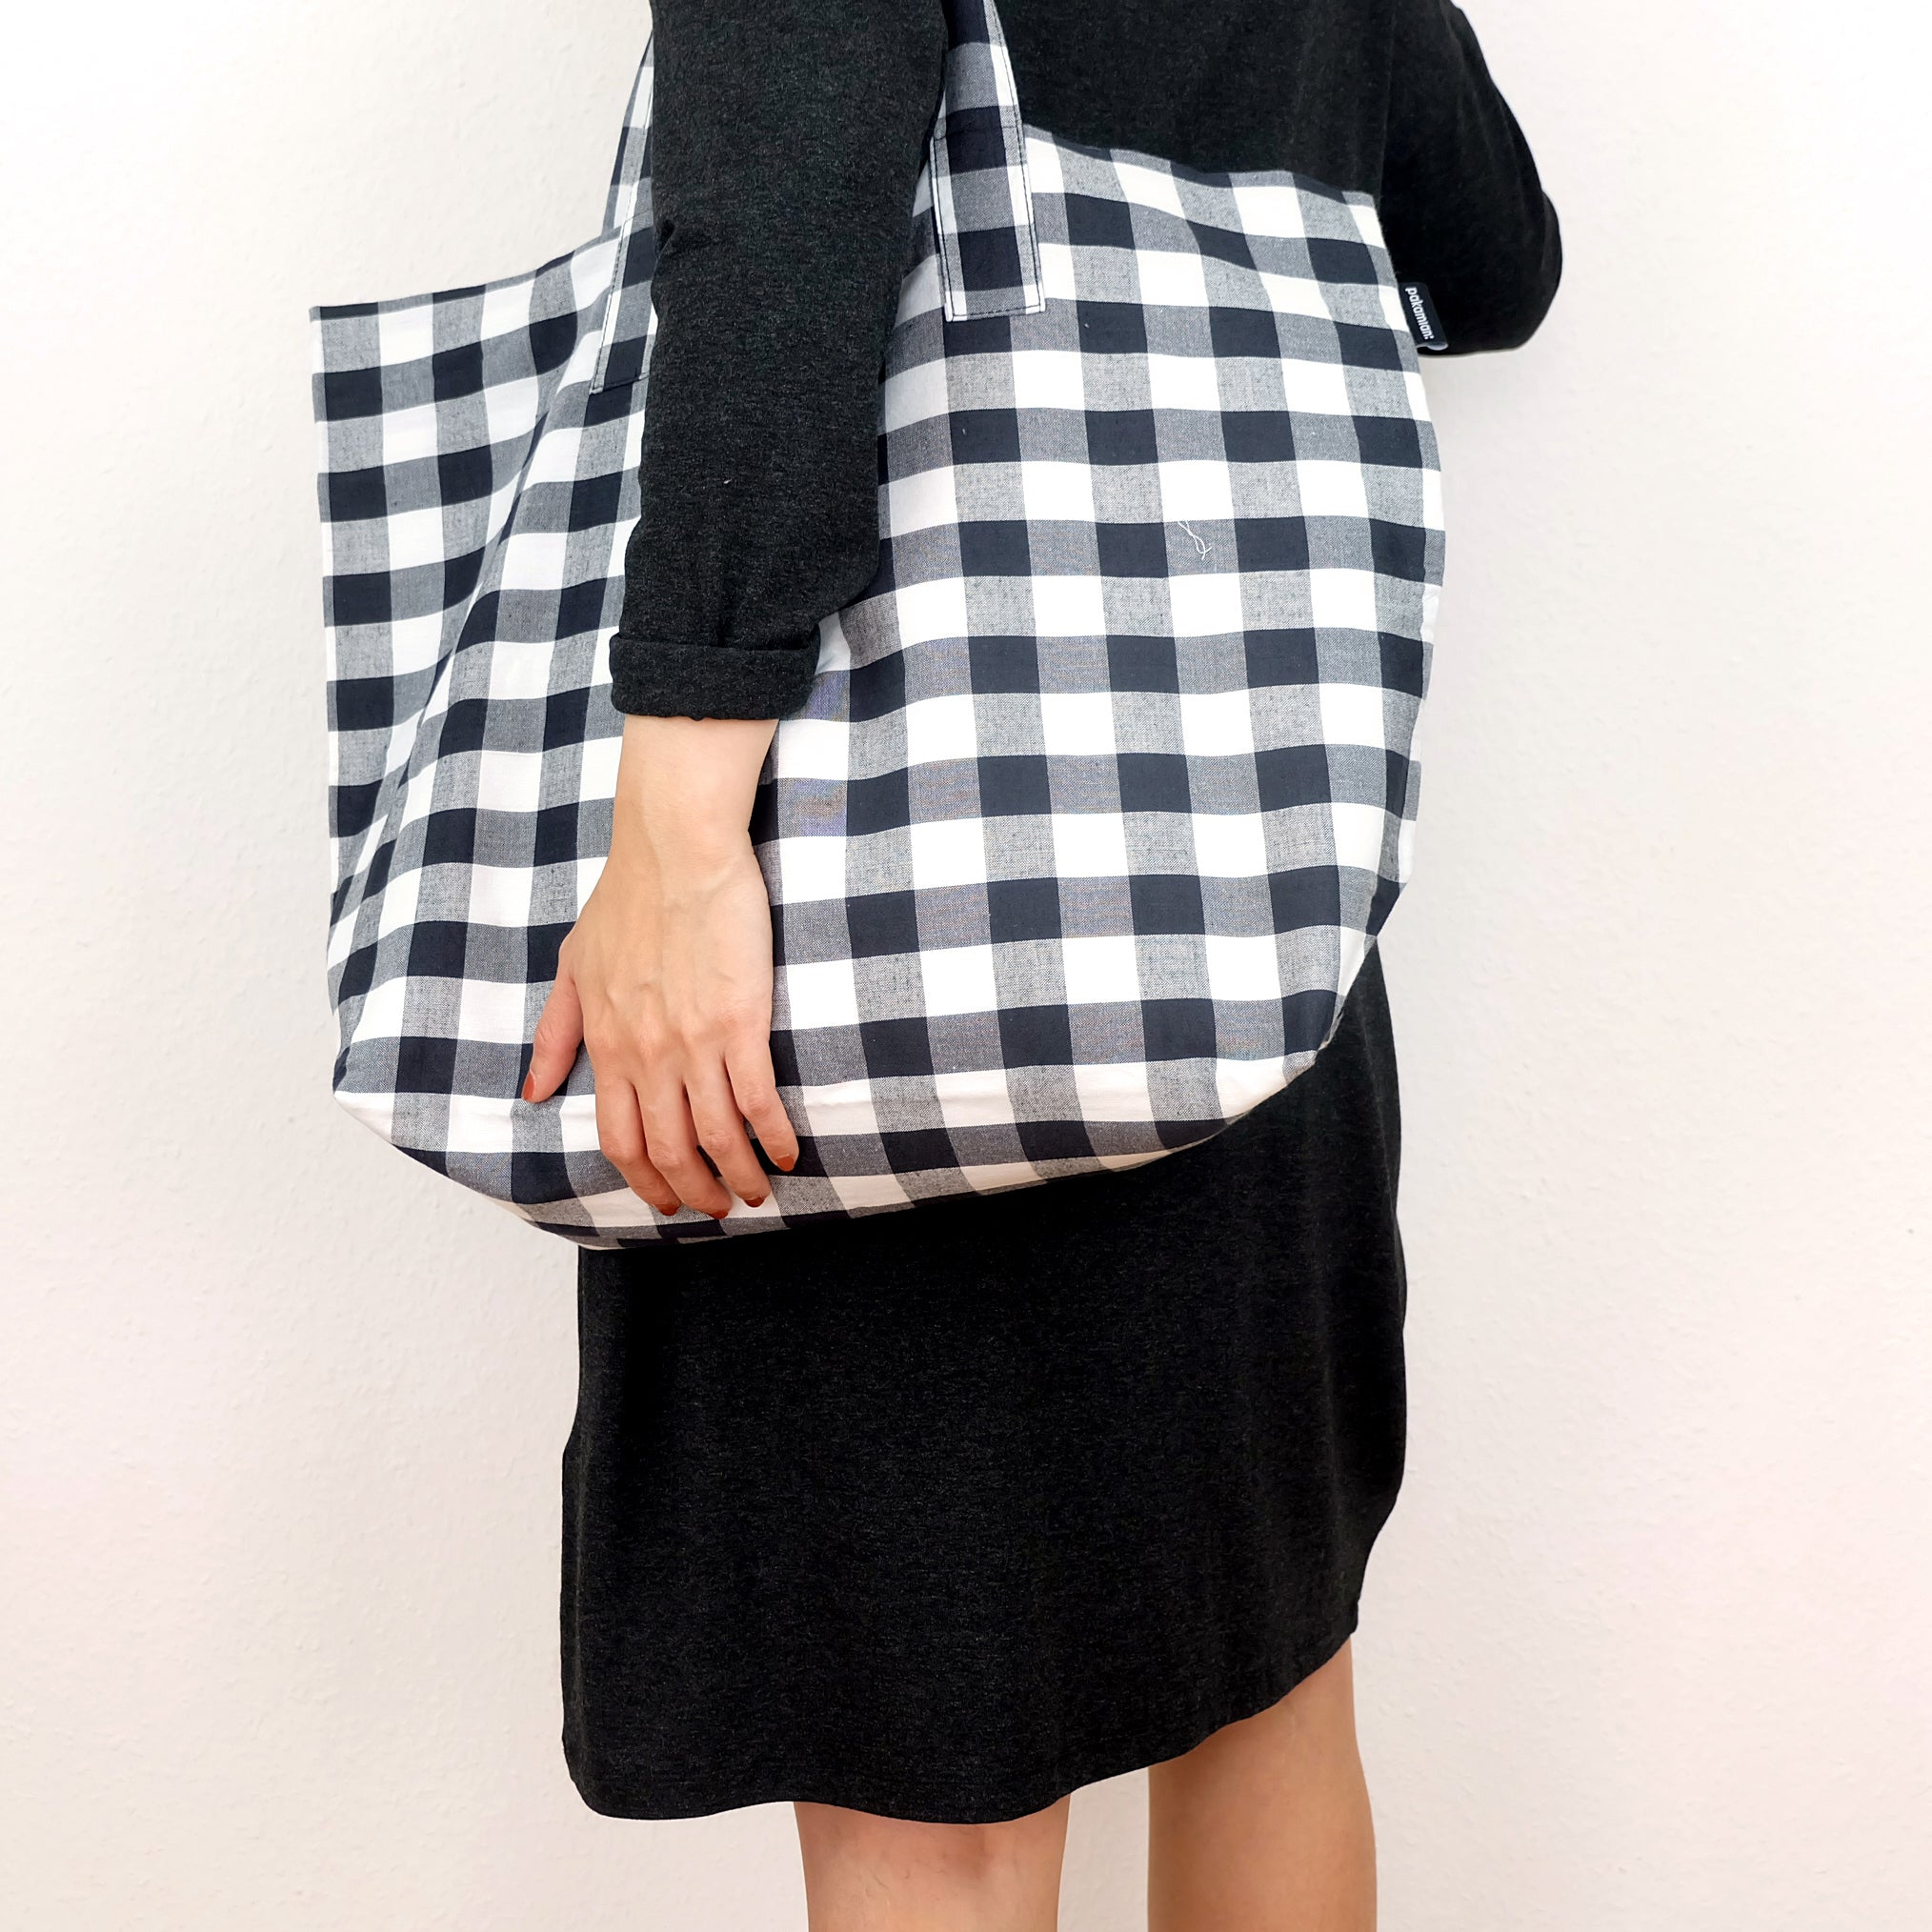 Large gingham tote - Summer Made